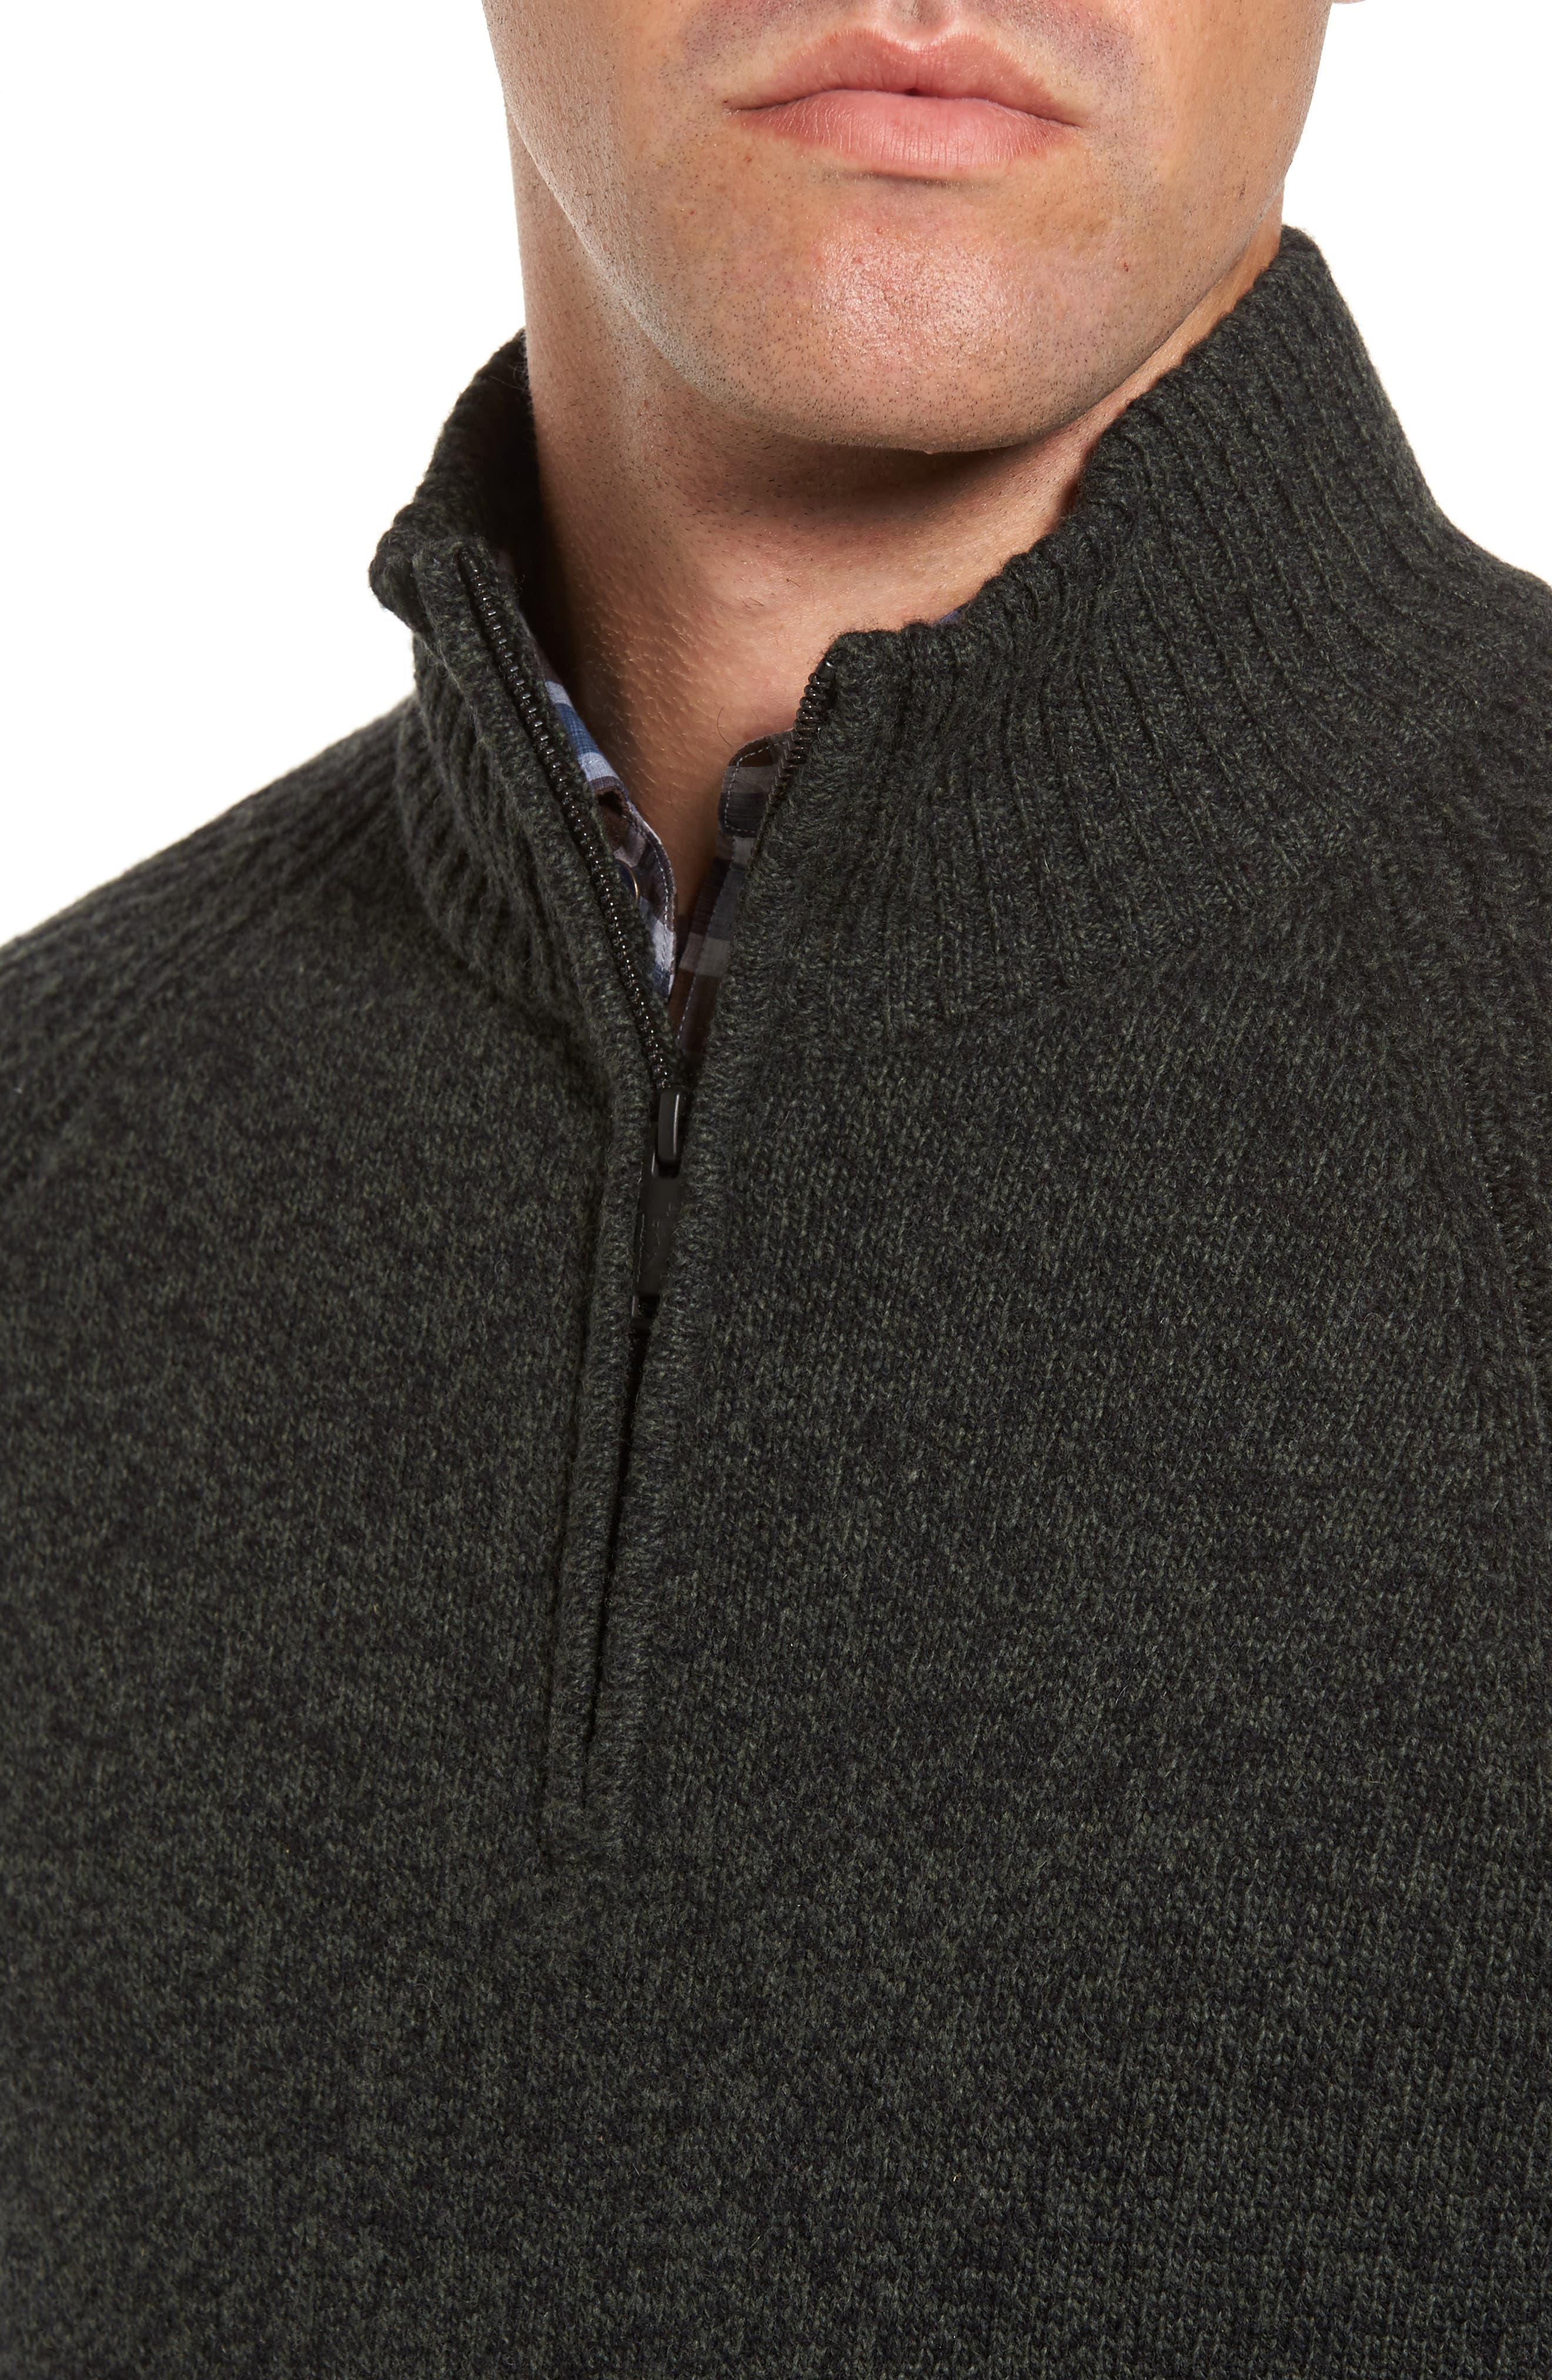 Stredwick Lambswool Sweater,                             Alternate thumbnail 17, color,